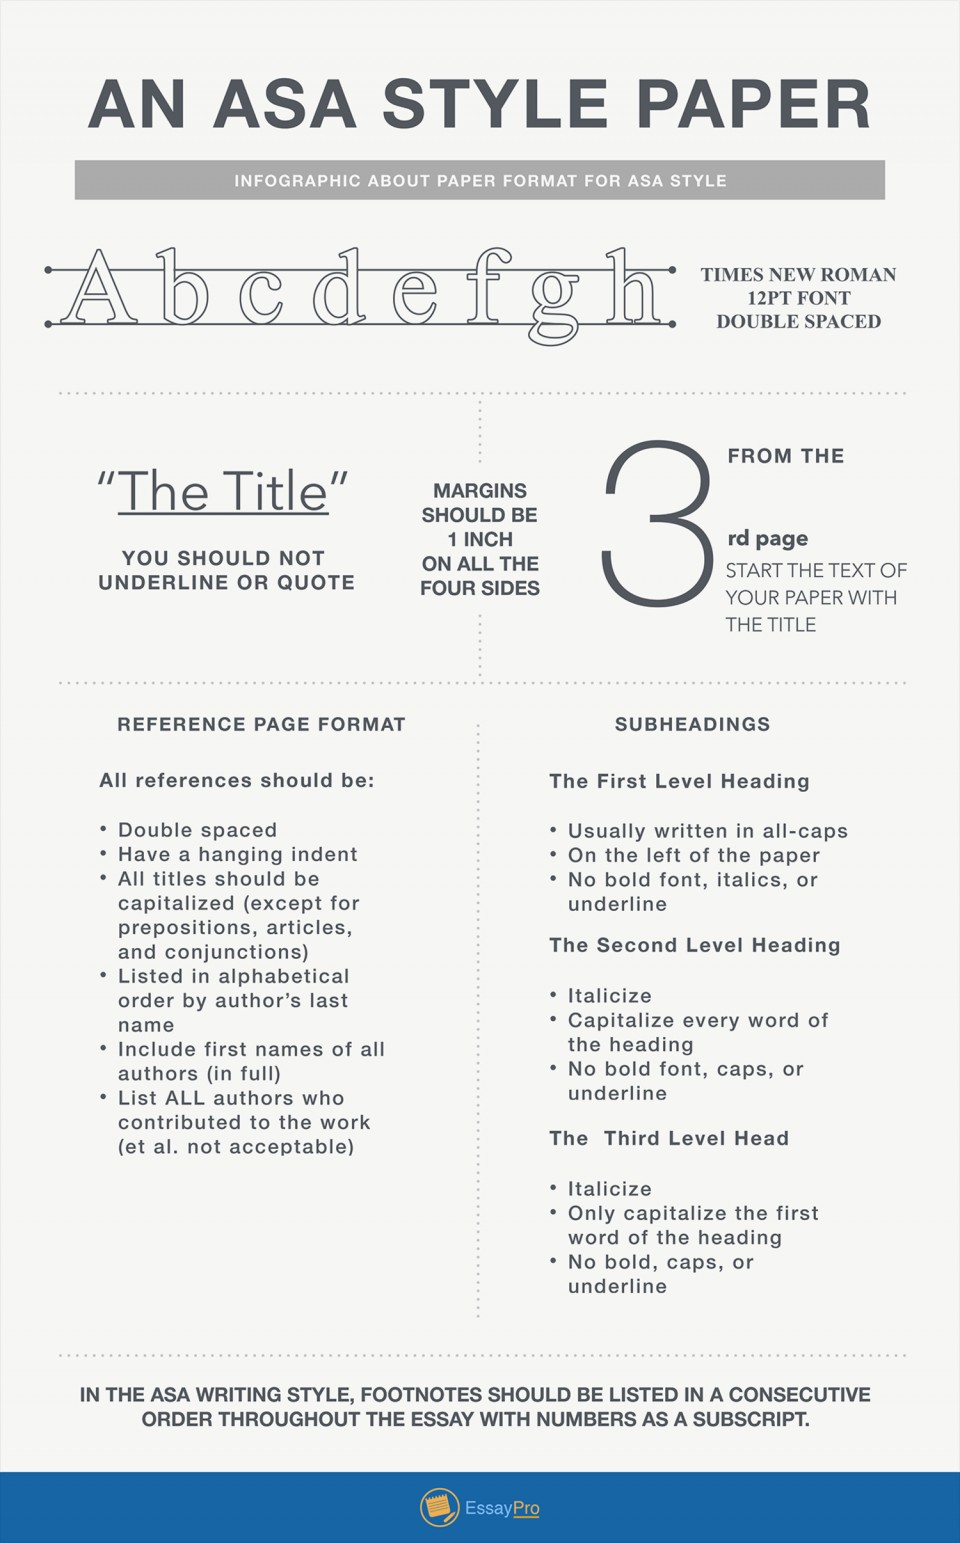 017 Research Paper Apa Style Guide For Writing Papers Best 960